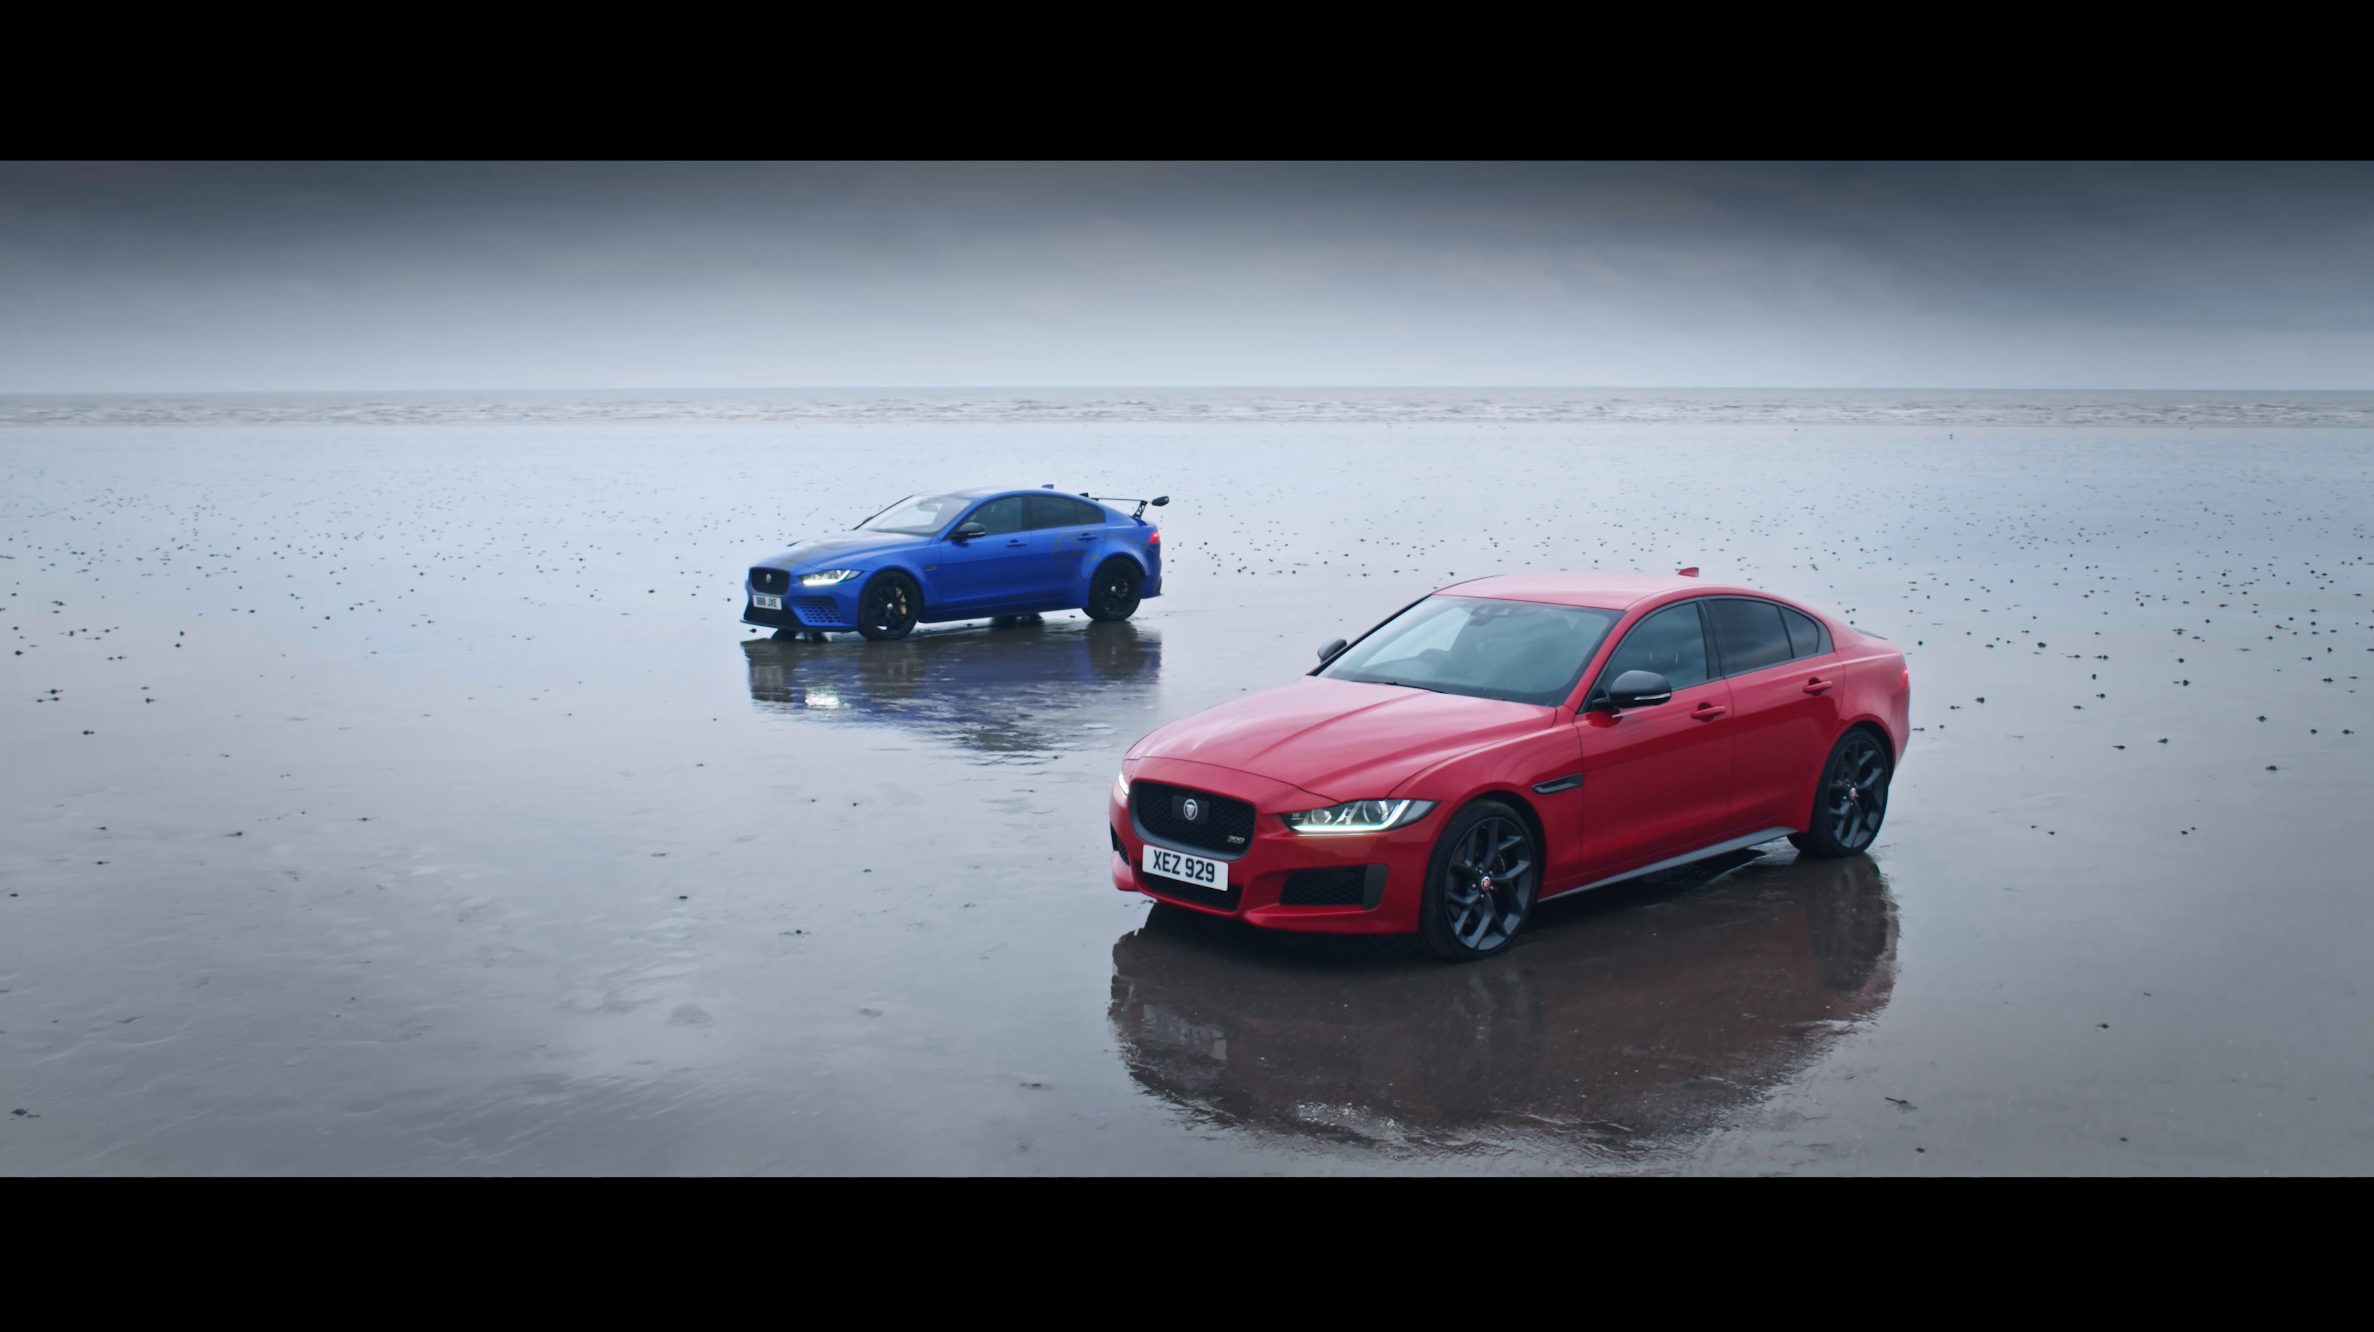 Jaguar has celebrated the shared bloodline of the XE 300 SPORT and XE SV Project 8 by creating a unique piece of art in the sand...